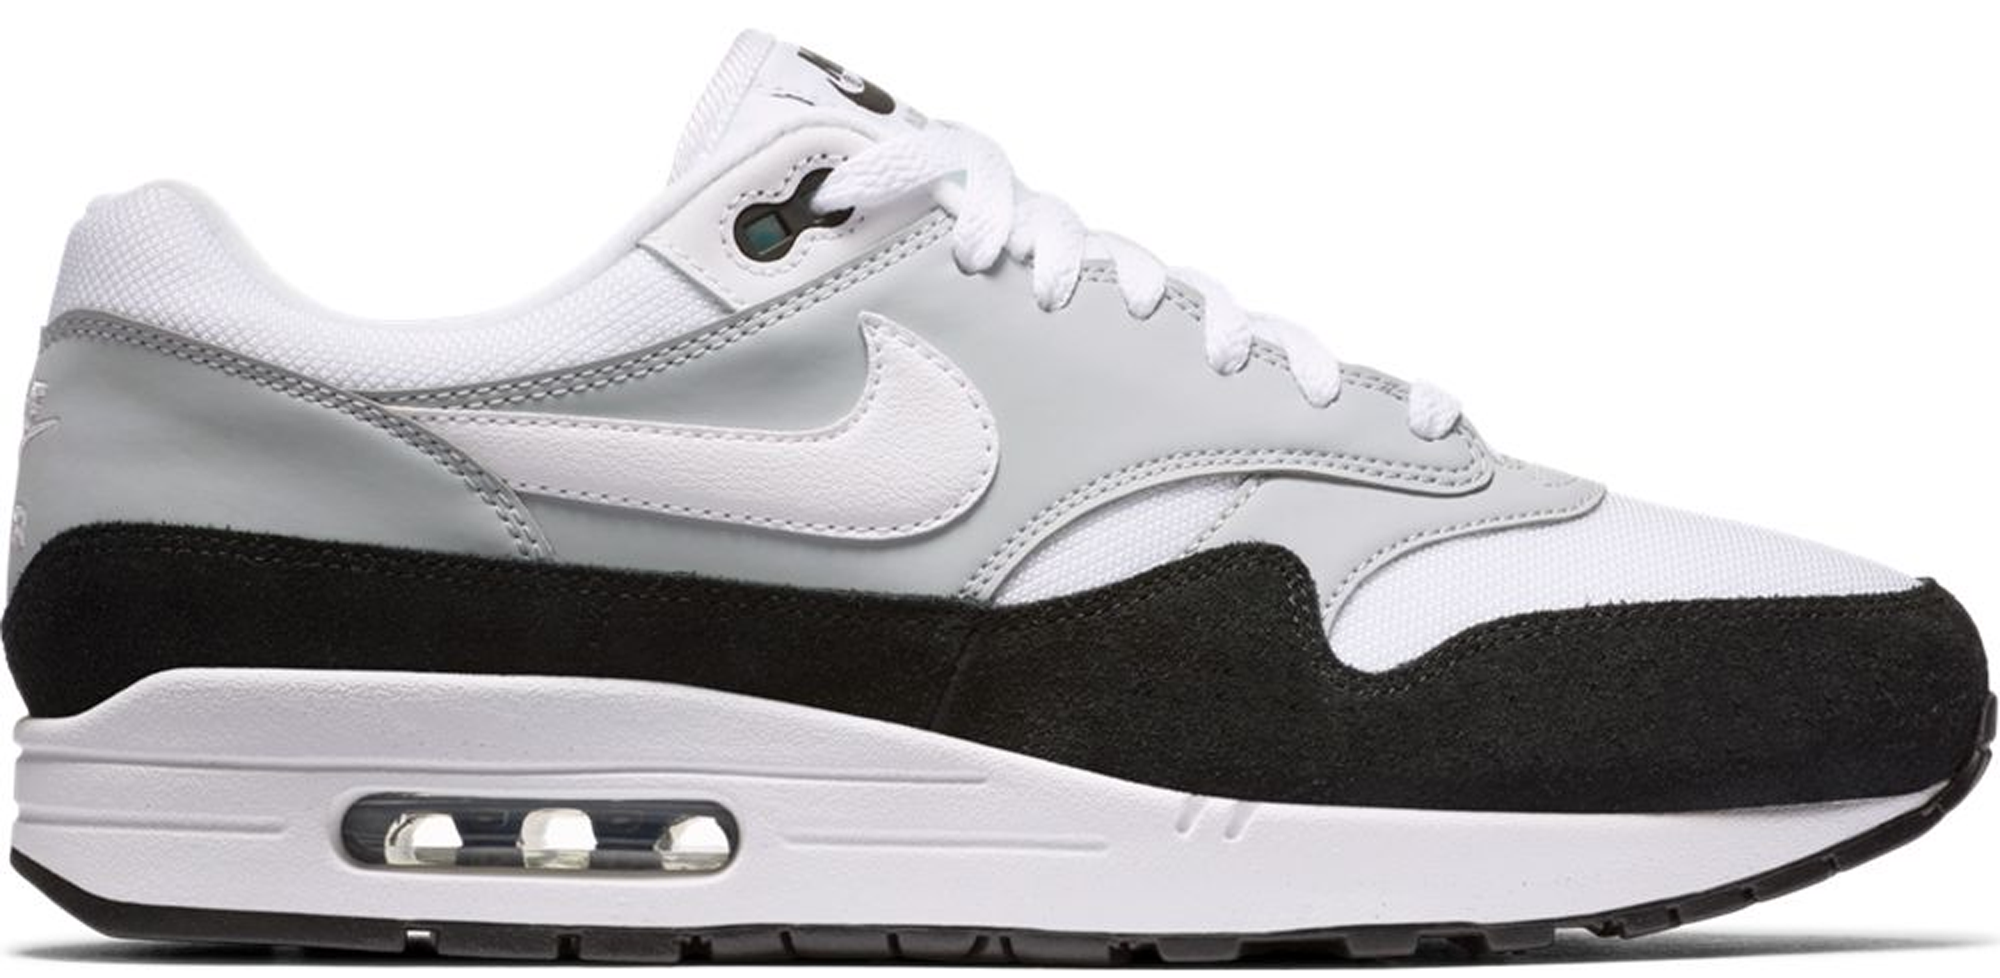 online store 98f70 a4976 ... italy buy nike air max 1 shoes deadstock sneakers fd720 272a3